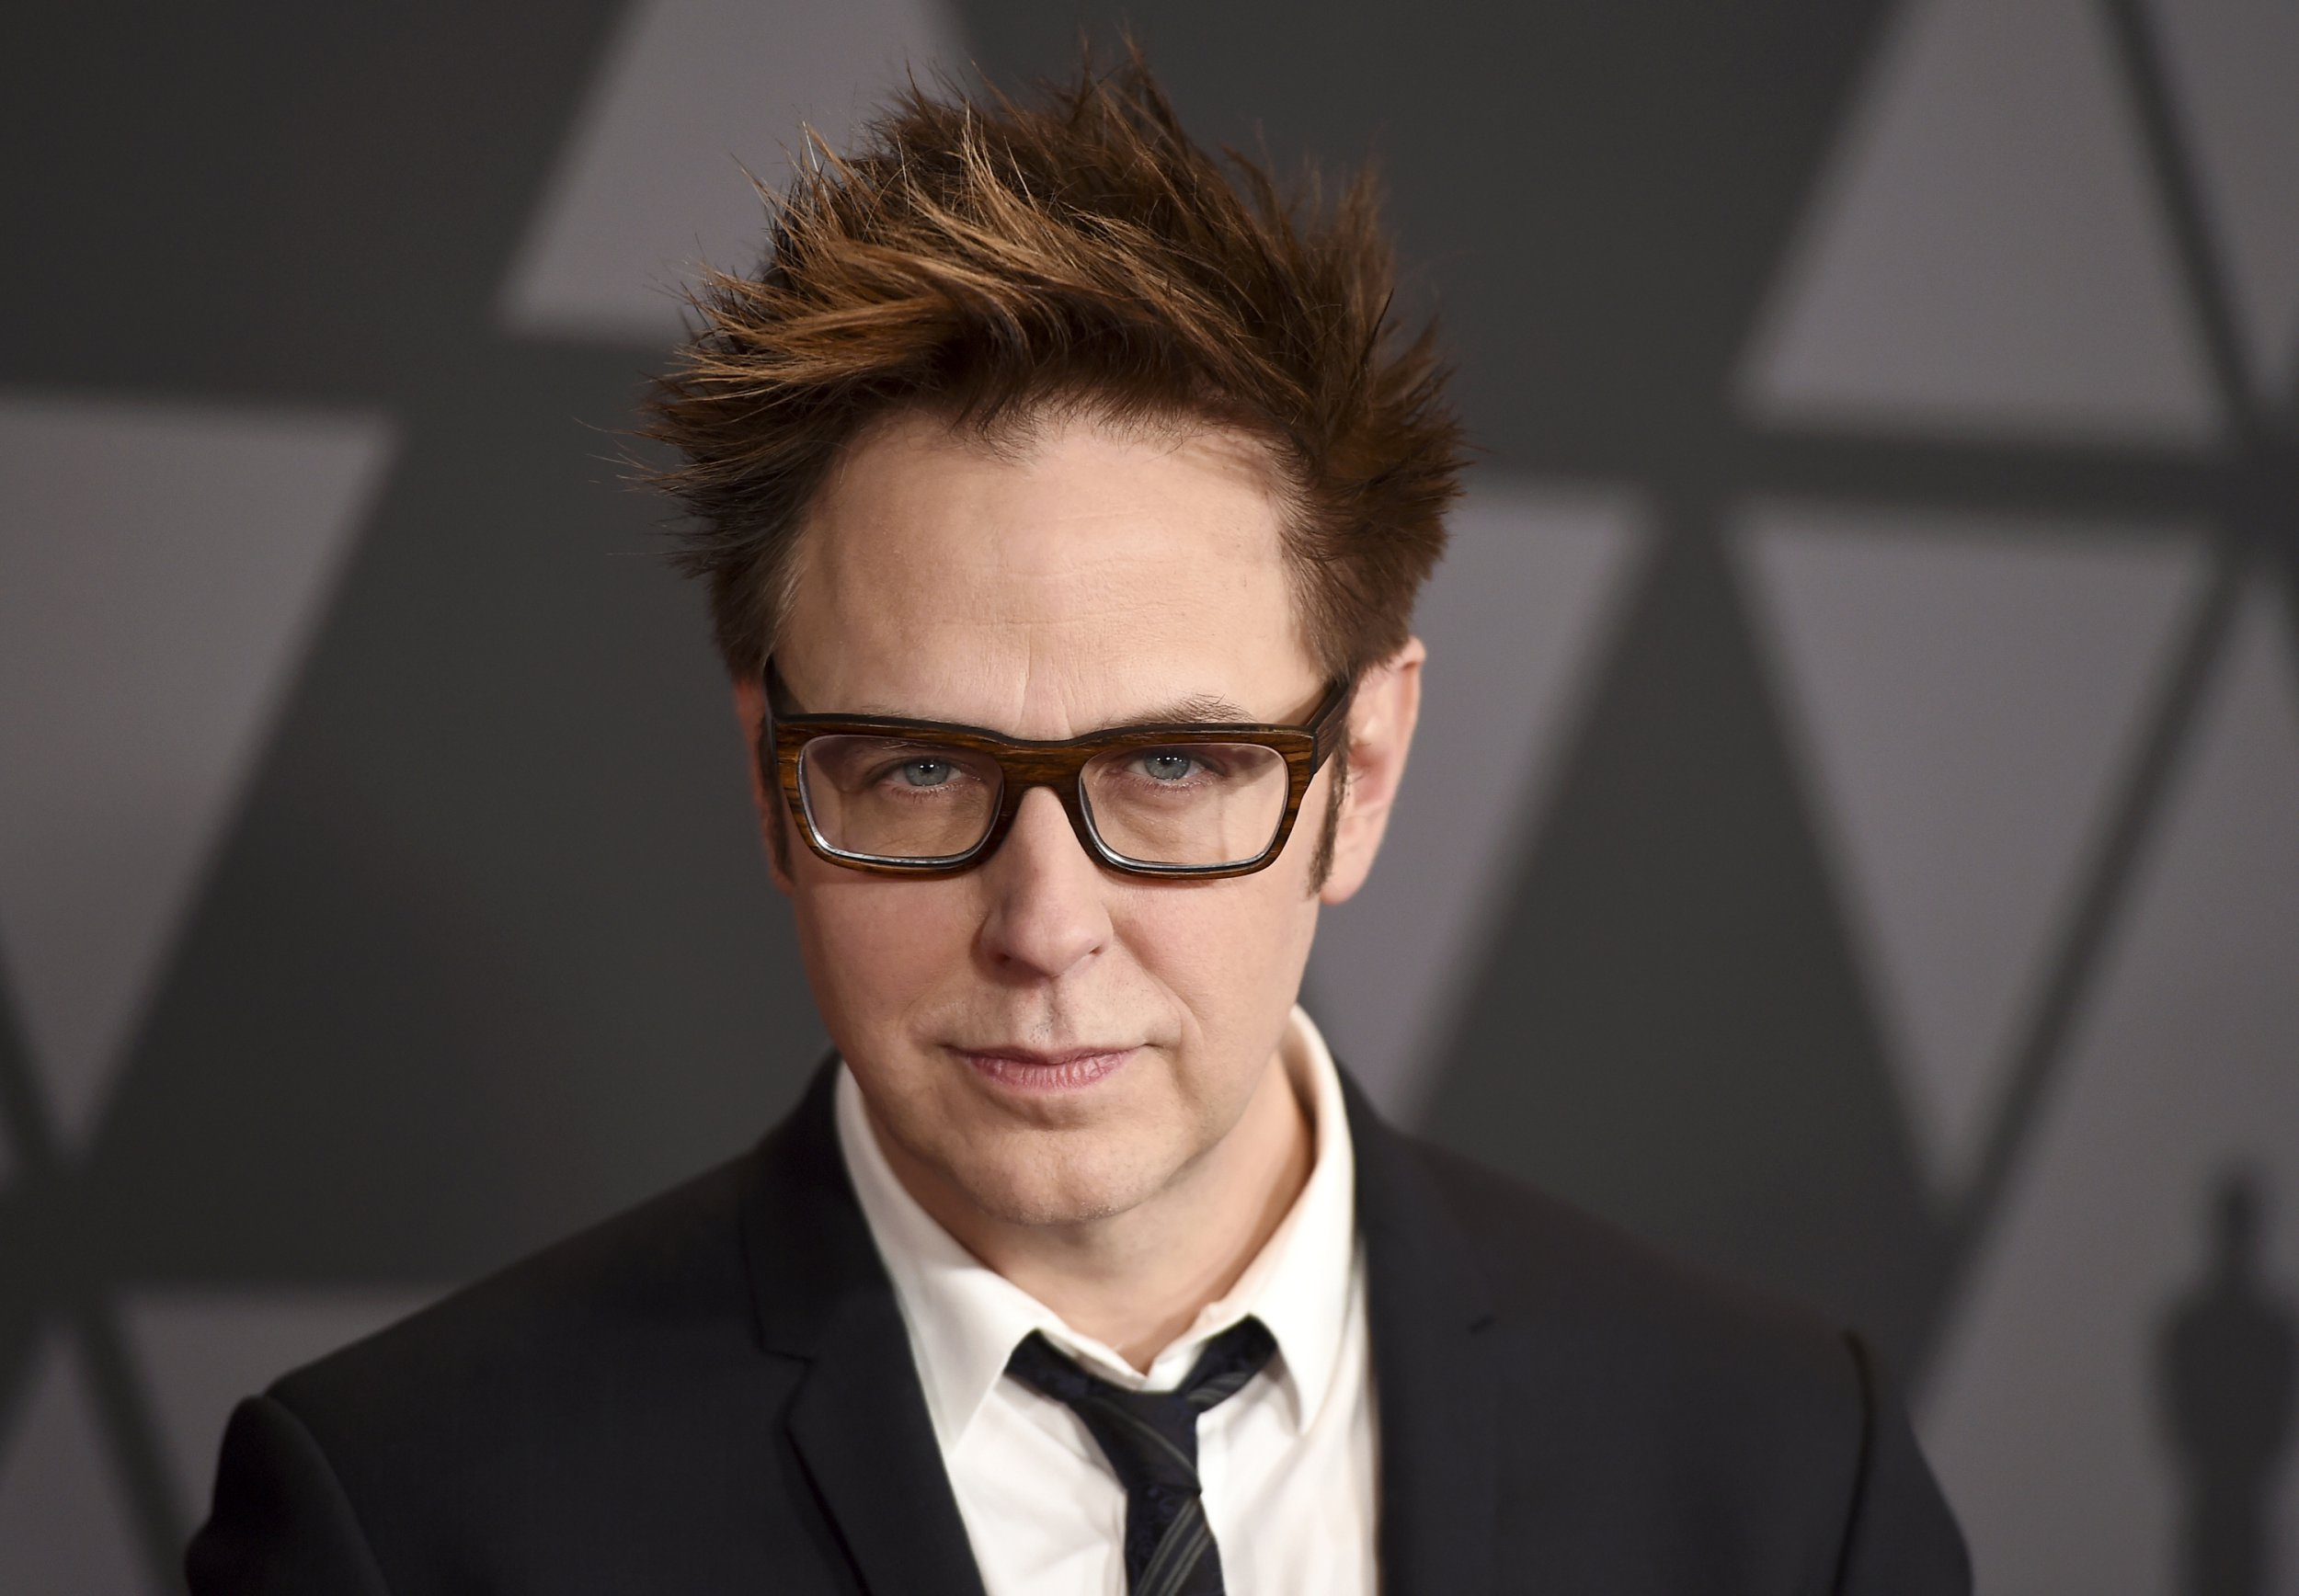 FILE - In this Nov. 11, 2017 file photo, filmmaker James Gunn arrives at the 9th annual Governors Awards in Los Angeles. Gunn has been fired as director of ???Guardians of the Galaxy 3??? because of old tweets that recently emerged where he joked about subjects like pedophilia and rape. Walt Disney Studios Chairman Alan Horn said in a statement Friday, July 20, 2018, that the tweets are indefensible, and the studio has severed ties with Gunn. (Photo by Jordan Strauss/Invision/AP, File)